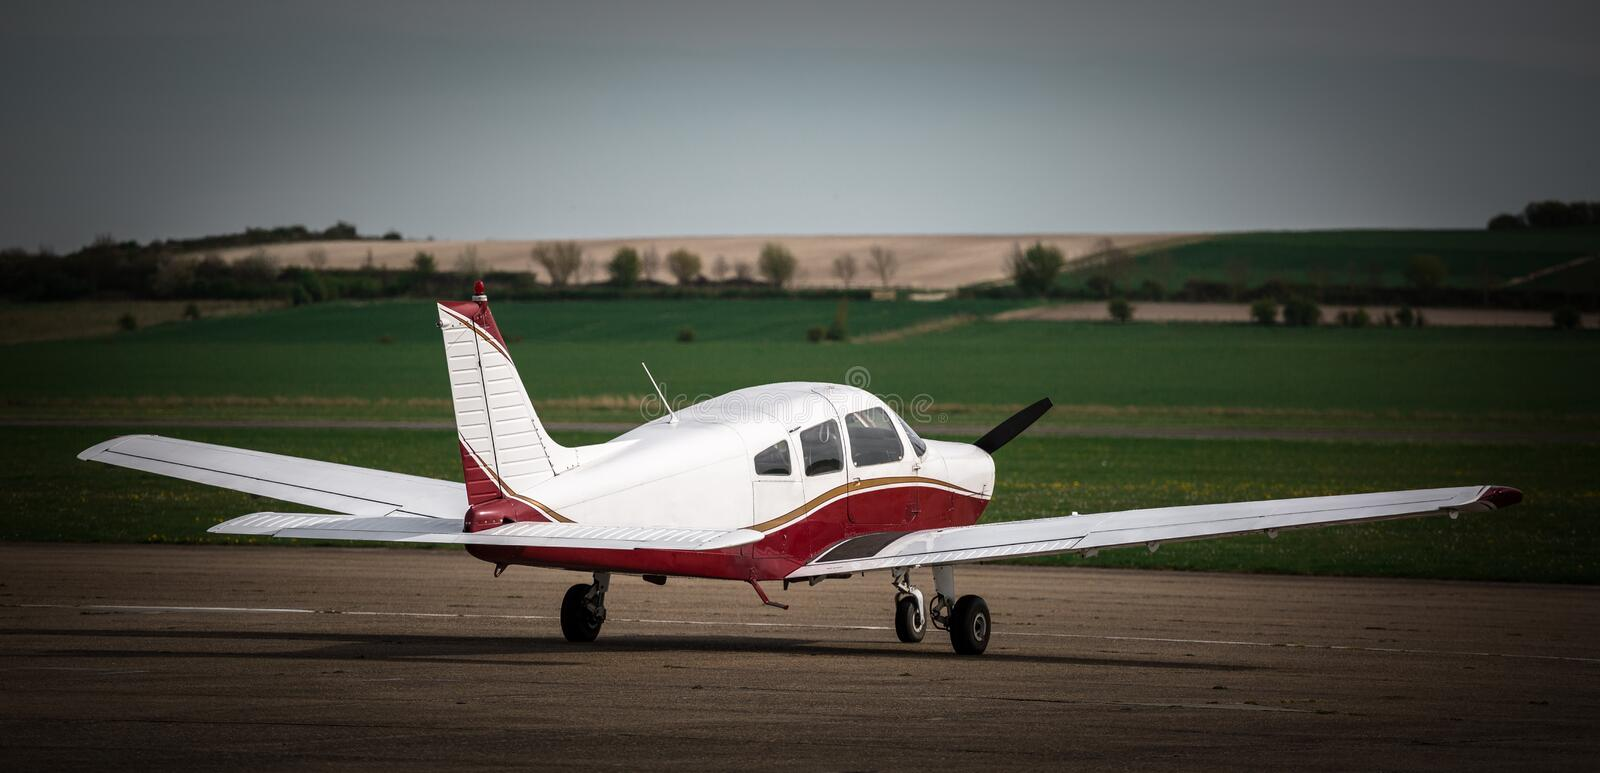 A low winged private plane. royalty free stock image